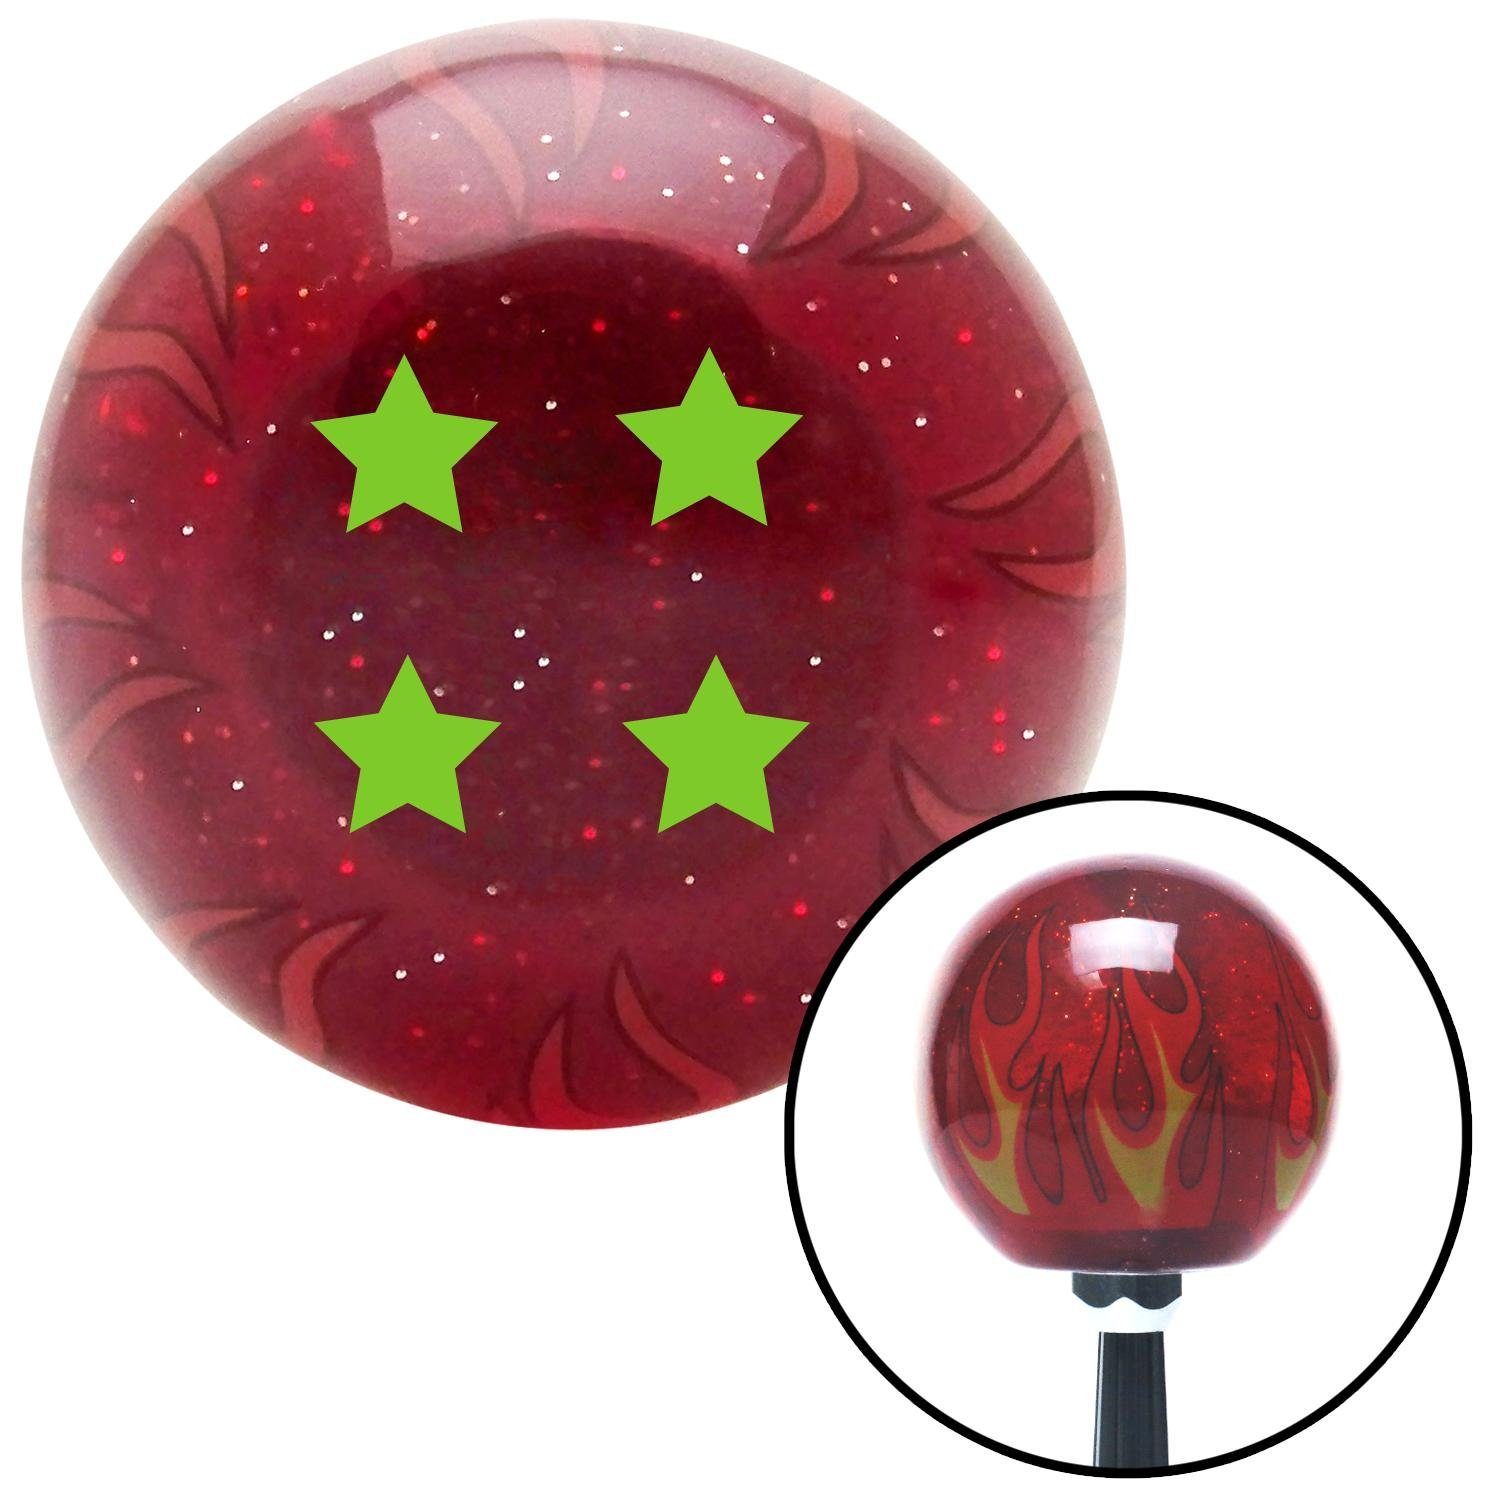 American Shifter 239441 Red Flame Metal Flake Shift Knob with M16 x 1.5 Insert Green 4 Stars